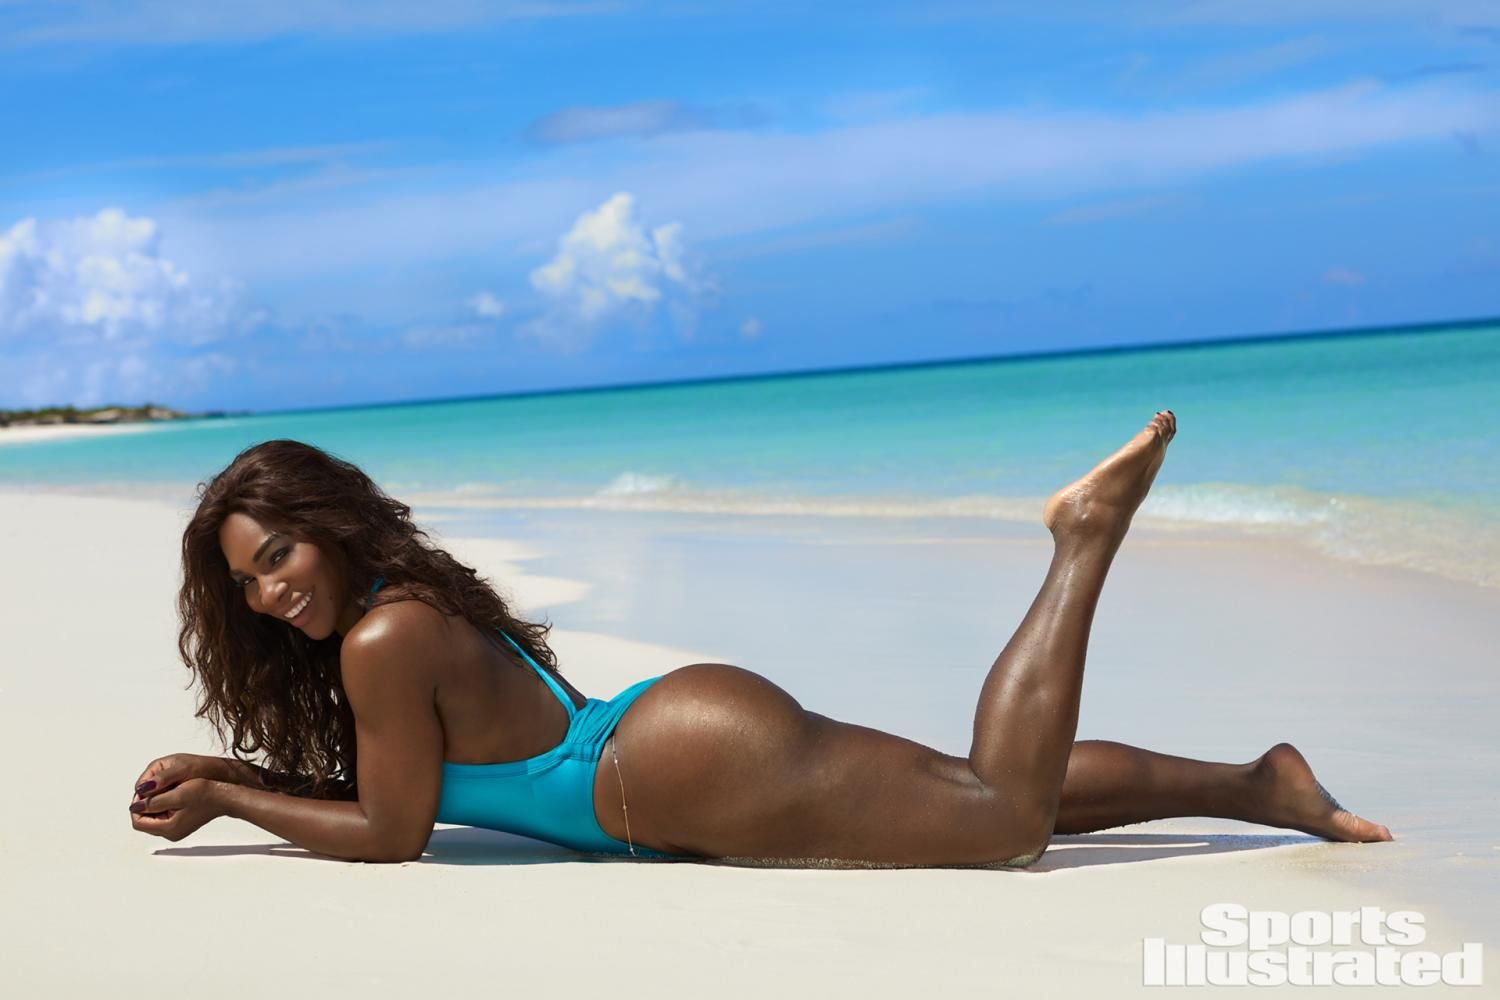 Get The Look: Serena Williams' Sexy Sports Illustrated Beach Waves